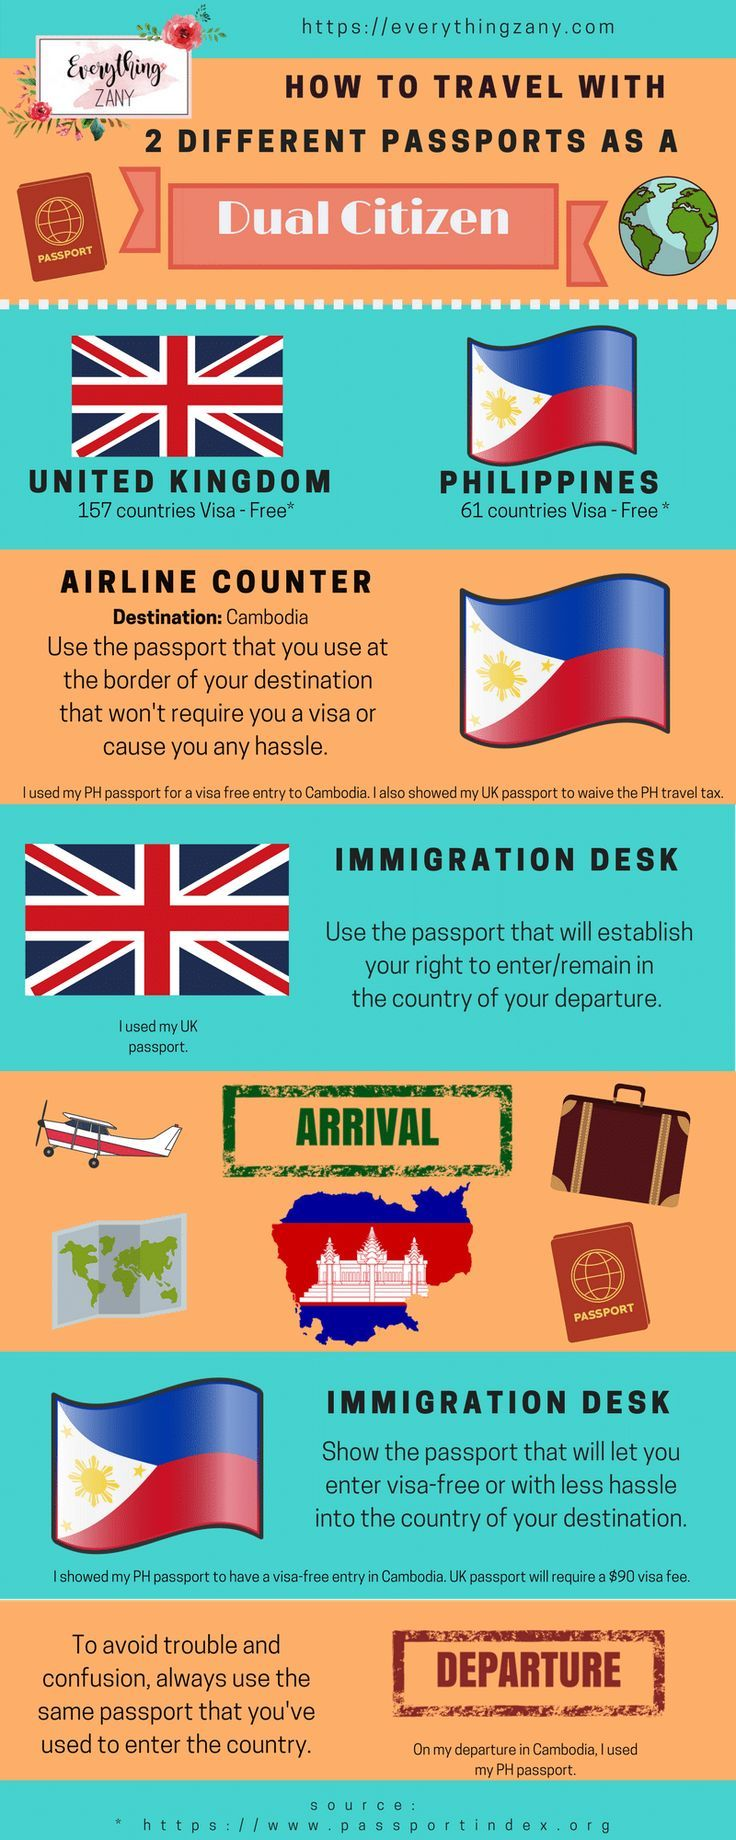 How To Travel With Two Different Passports As A Dual